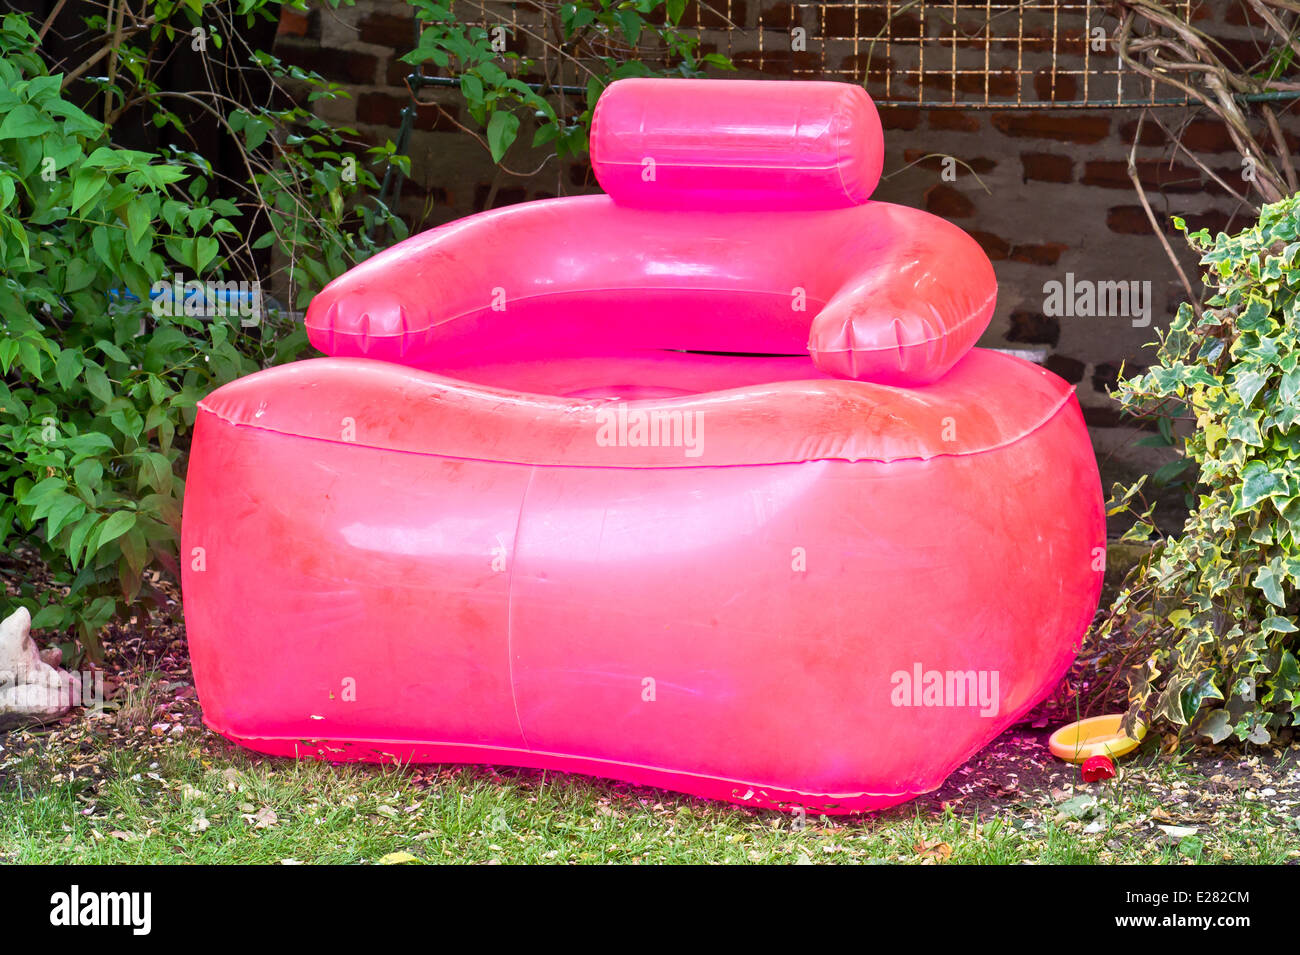 inflatable garden furniture. a pink inflatable chair in garden furniture